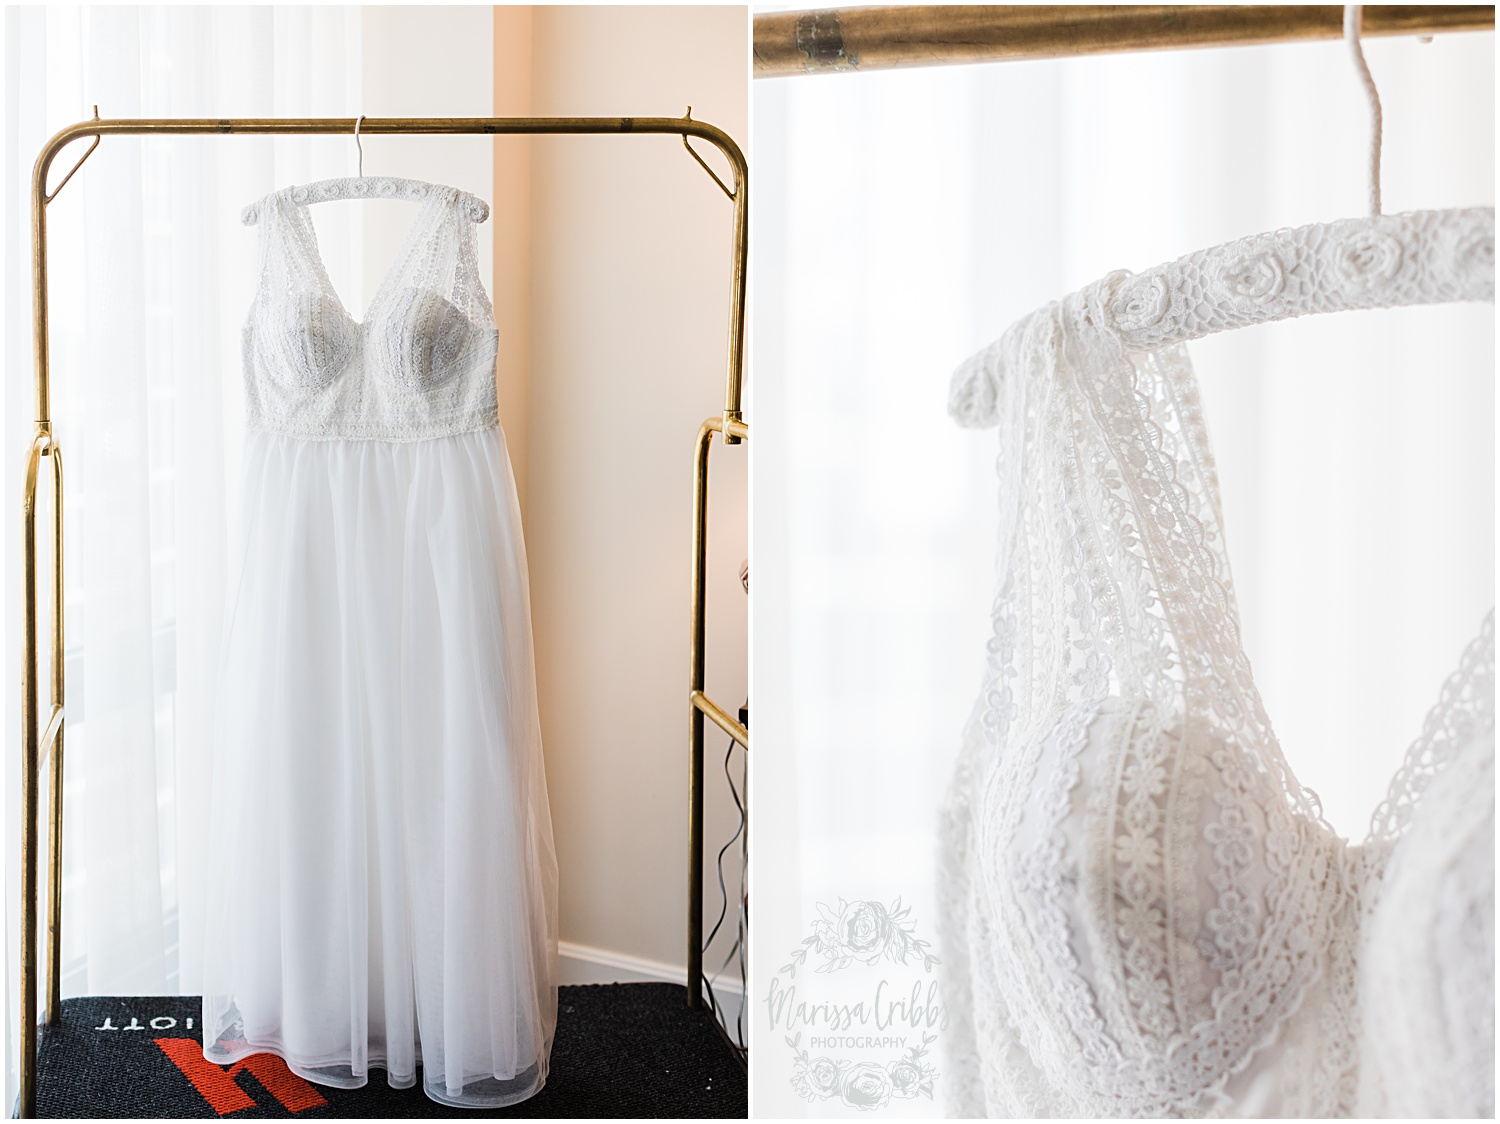 RACHEL & SCOTT MARRIED | MARISSA CRIBBS PHOTOGRAPHY_7630.jpg